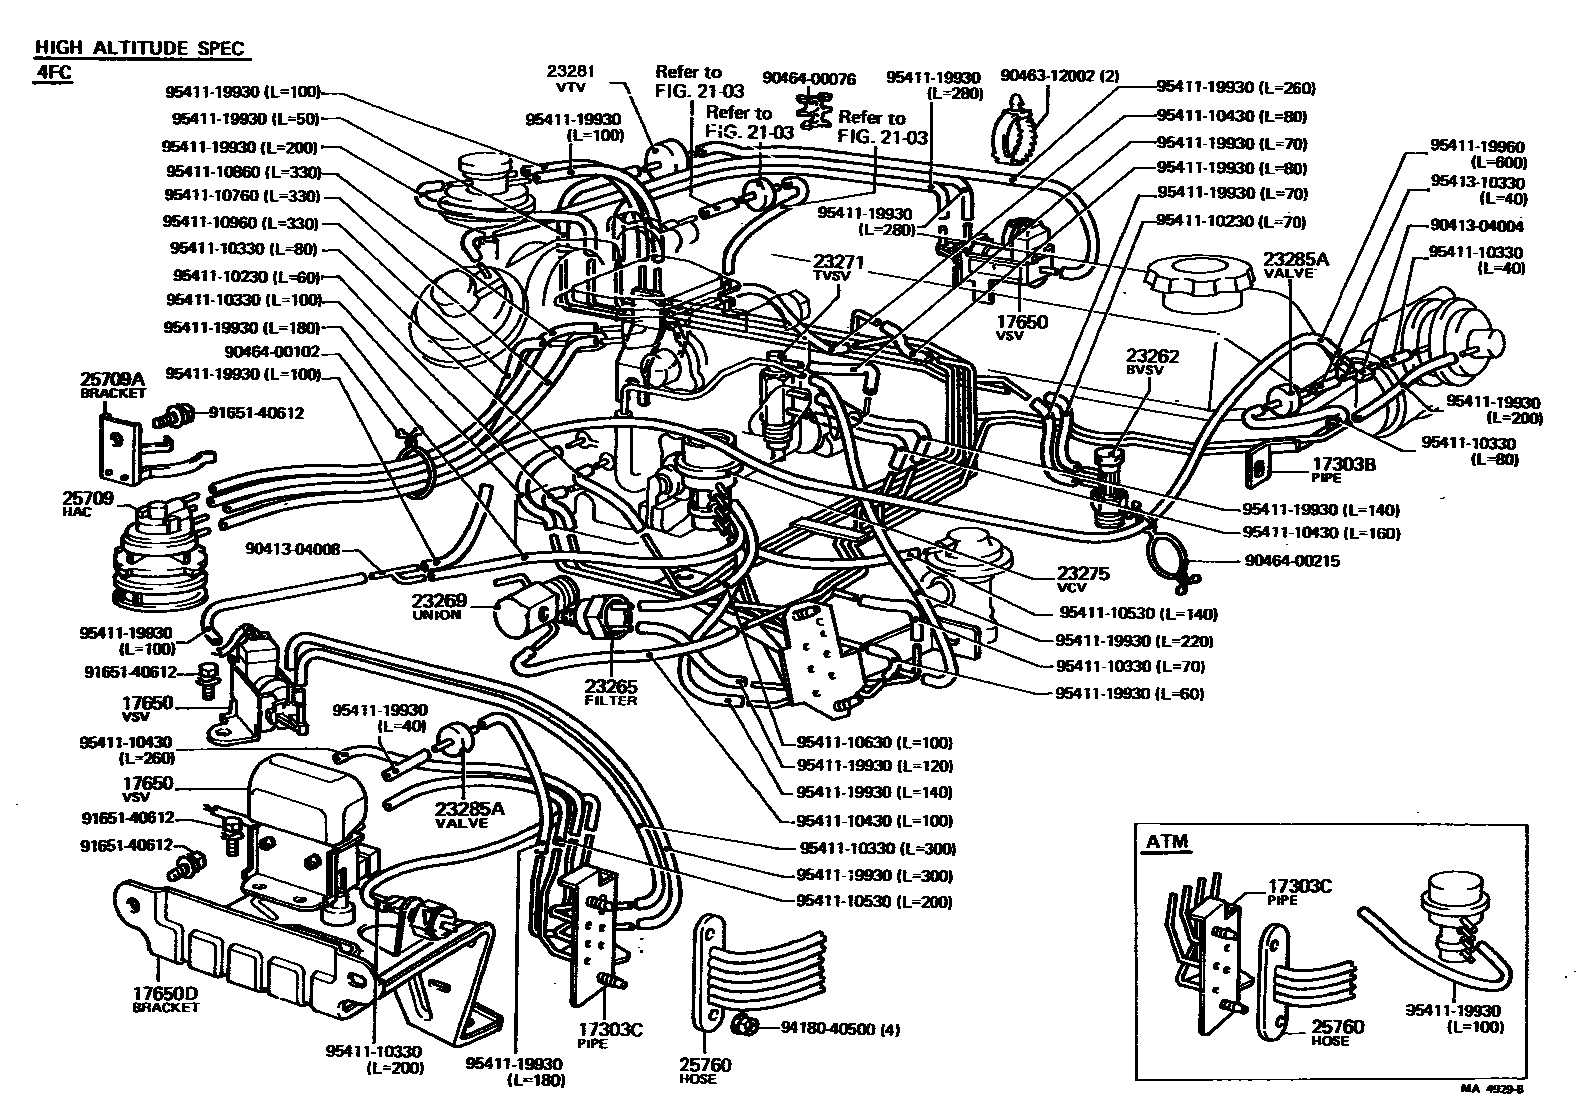 hight resolution of 93 toyota tacoma engine diagram wiring diagram query 1993 toyota pickup engine wiring diagram 1993 toyota tacoma engine diagram